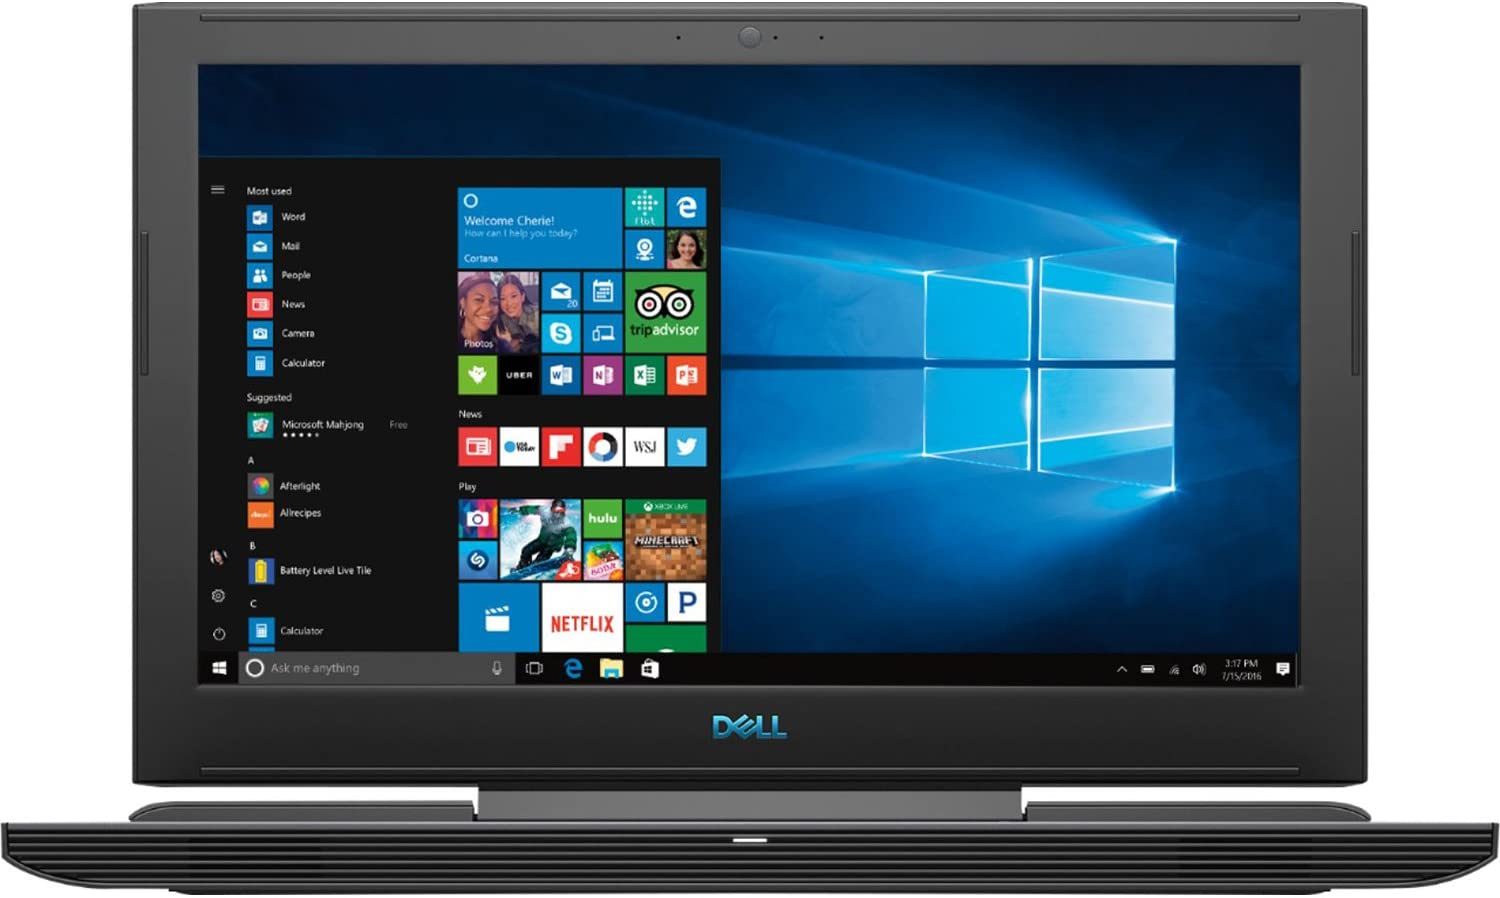 "Dell G7 Series 7588 15.6"" Full HD Gaming Laptop - 8th Gen. Intel Core i7-8750H Processor up to 4.10 GHz, 32GB RAM, 512GB SSD + 1TB HDD, 6GB Nvidia GeForce GTX 1060 with Max-Q Design, Windows 10"